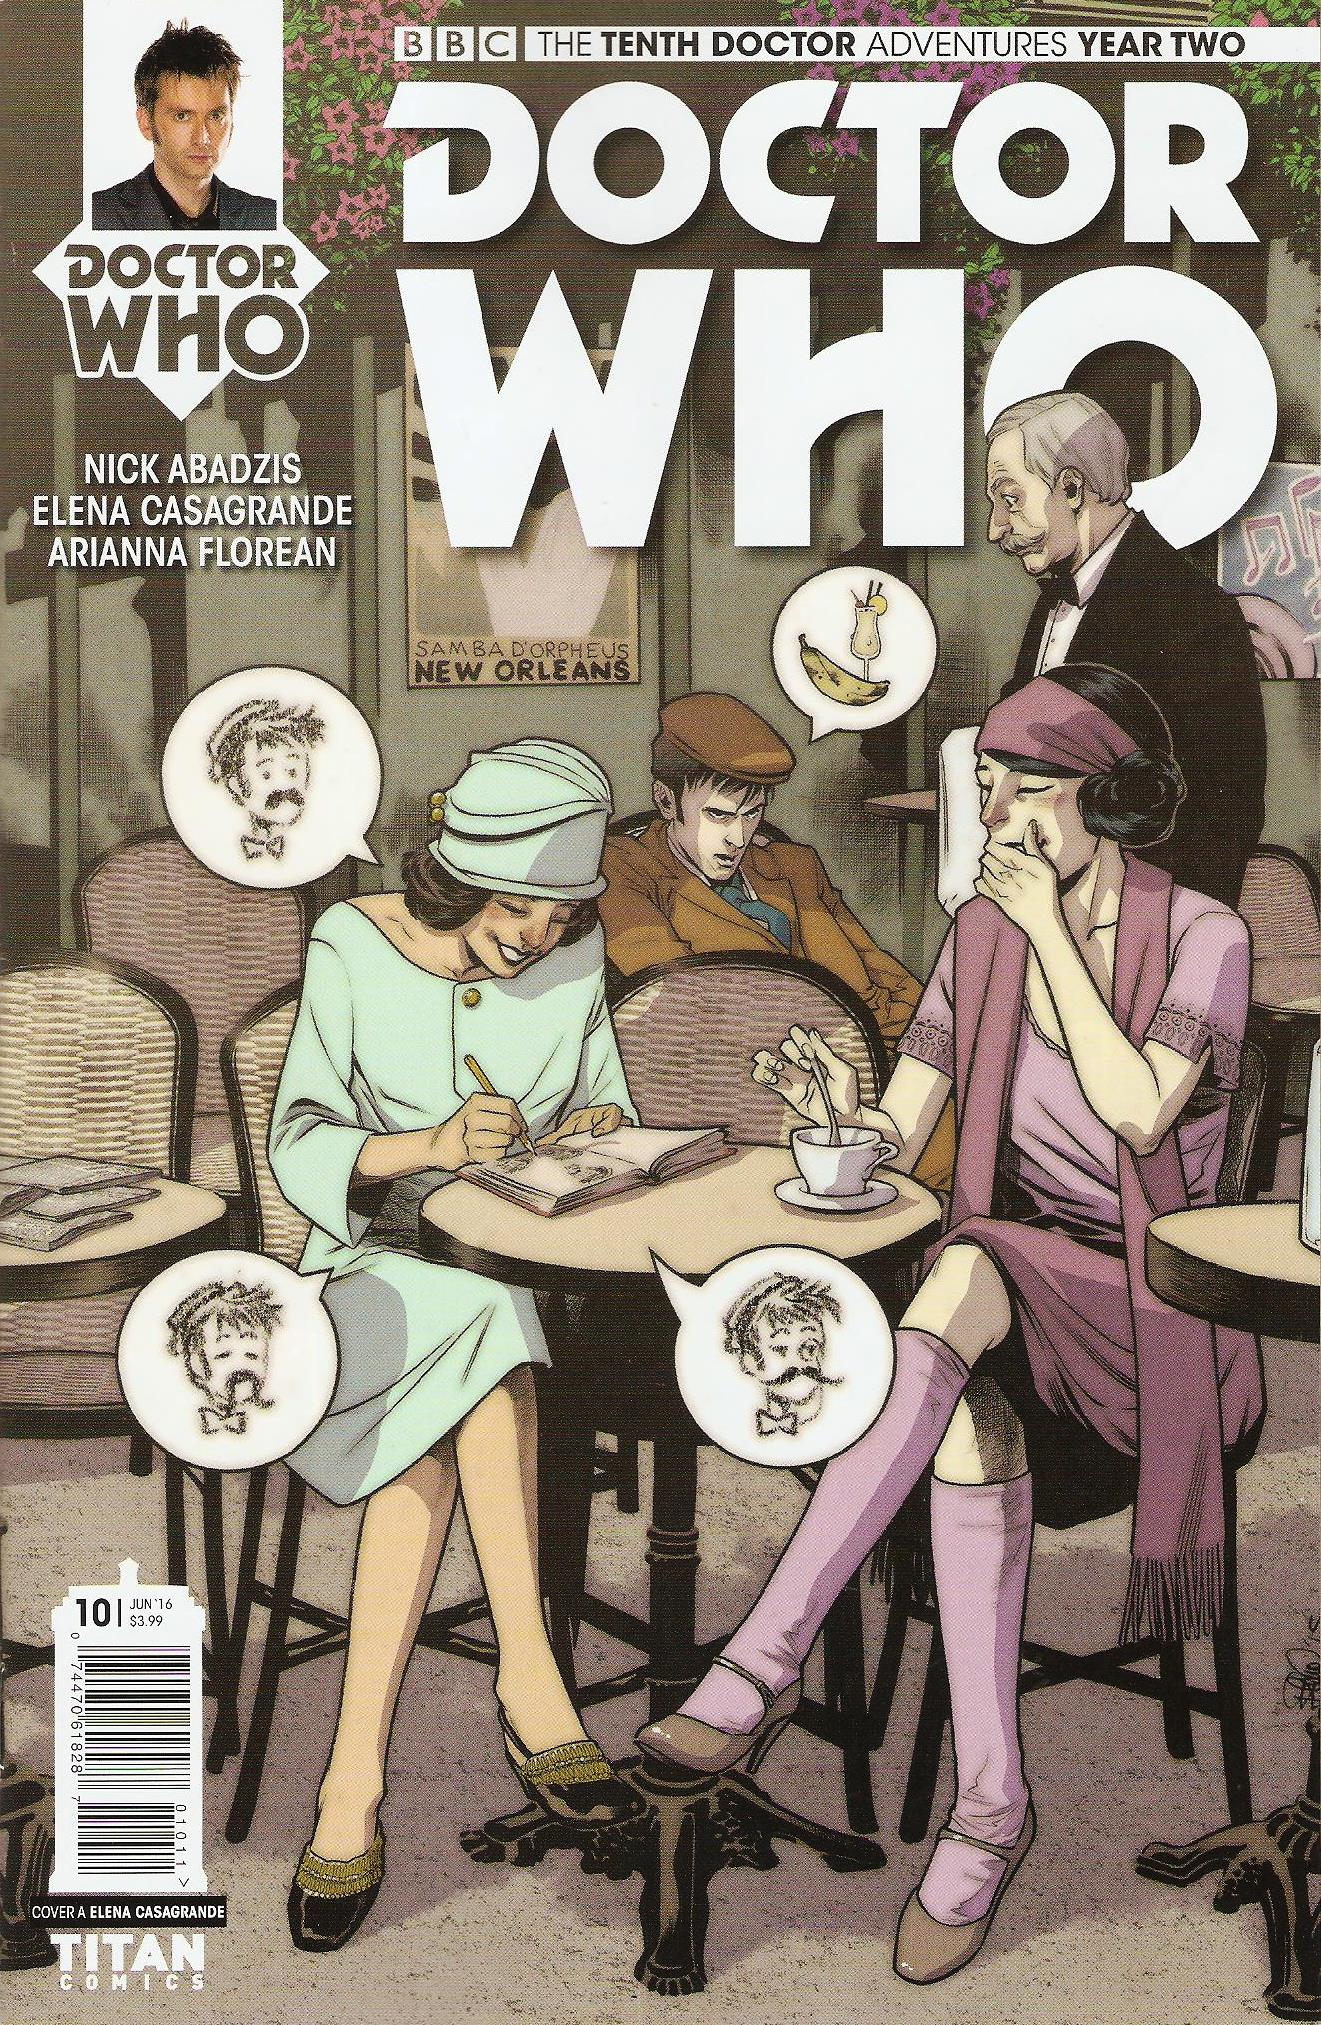 Tenth doctor year 2 issue 10a